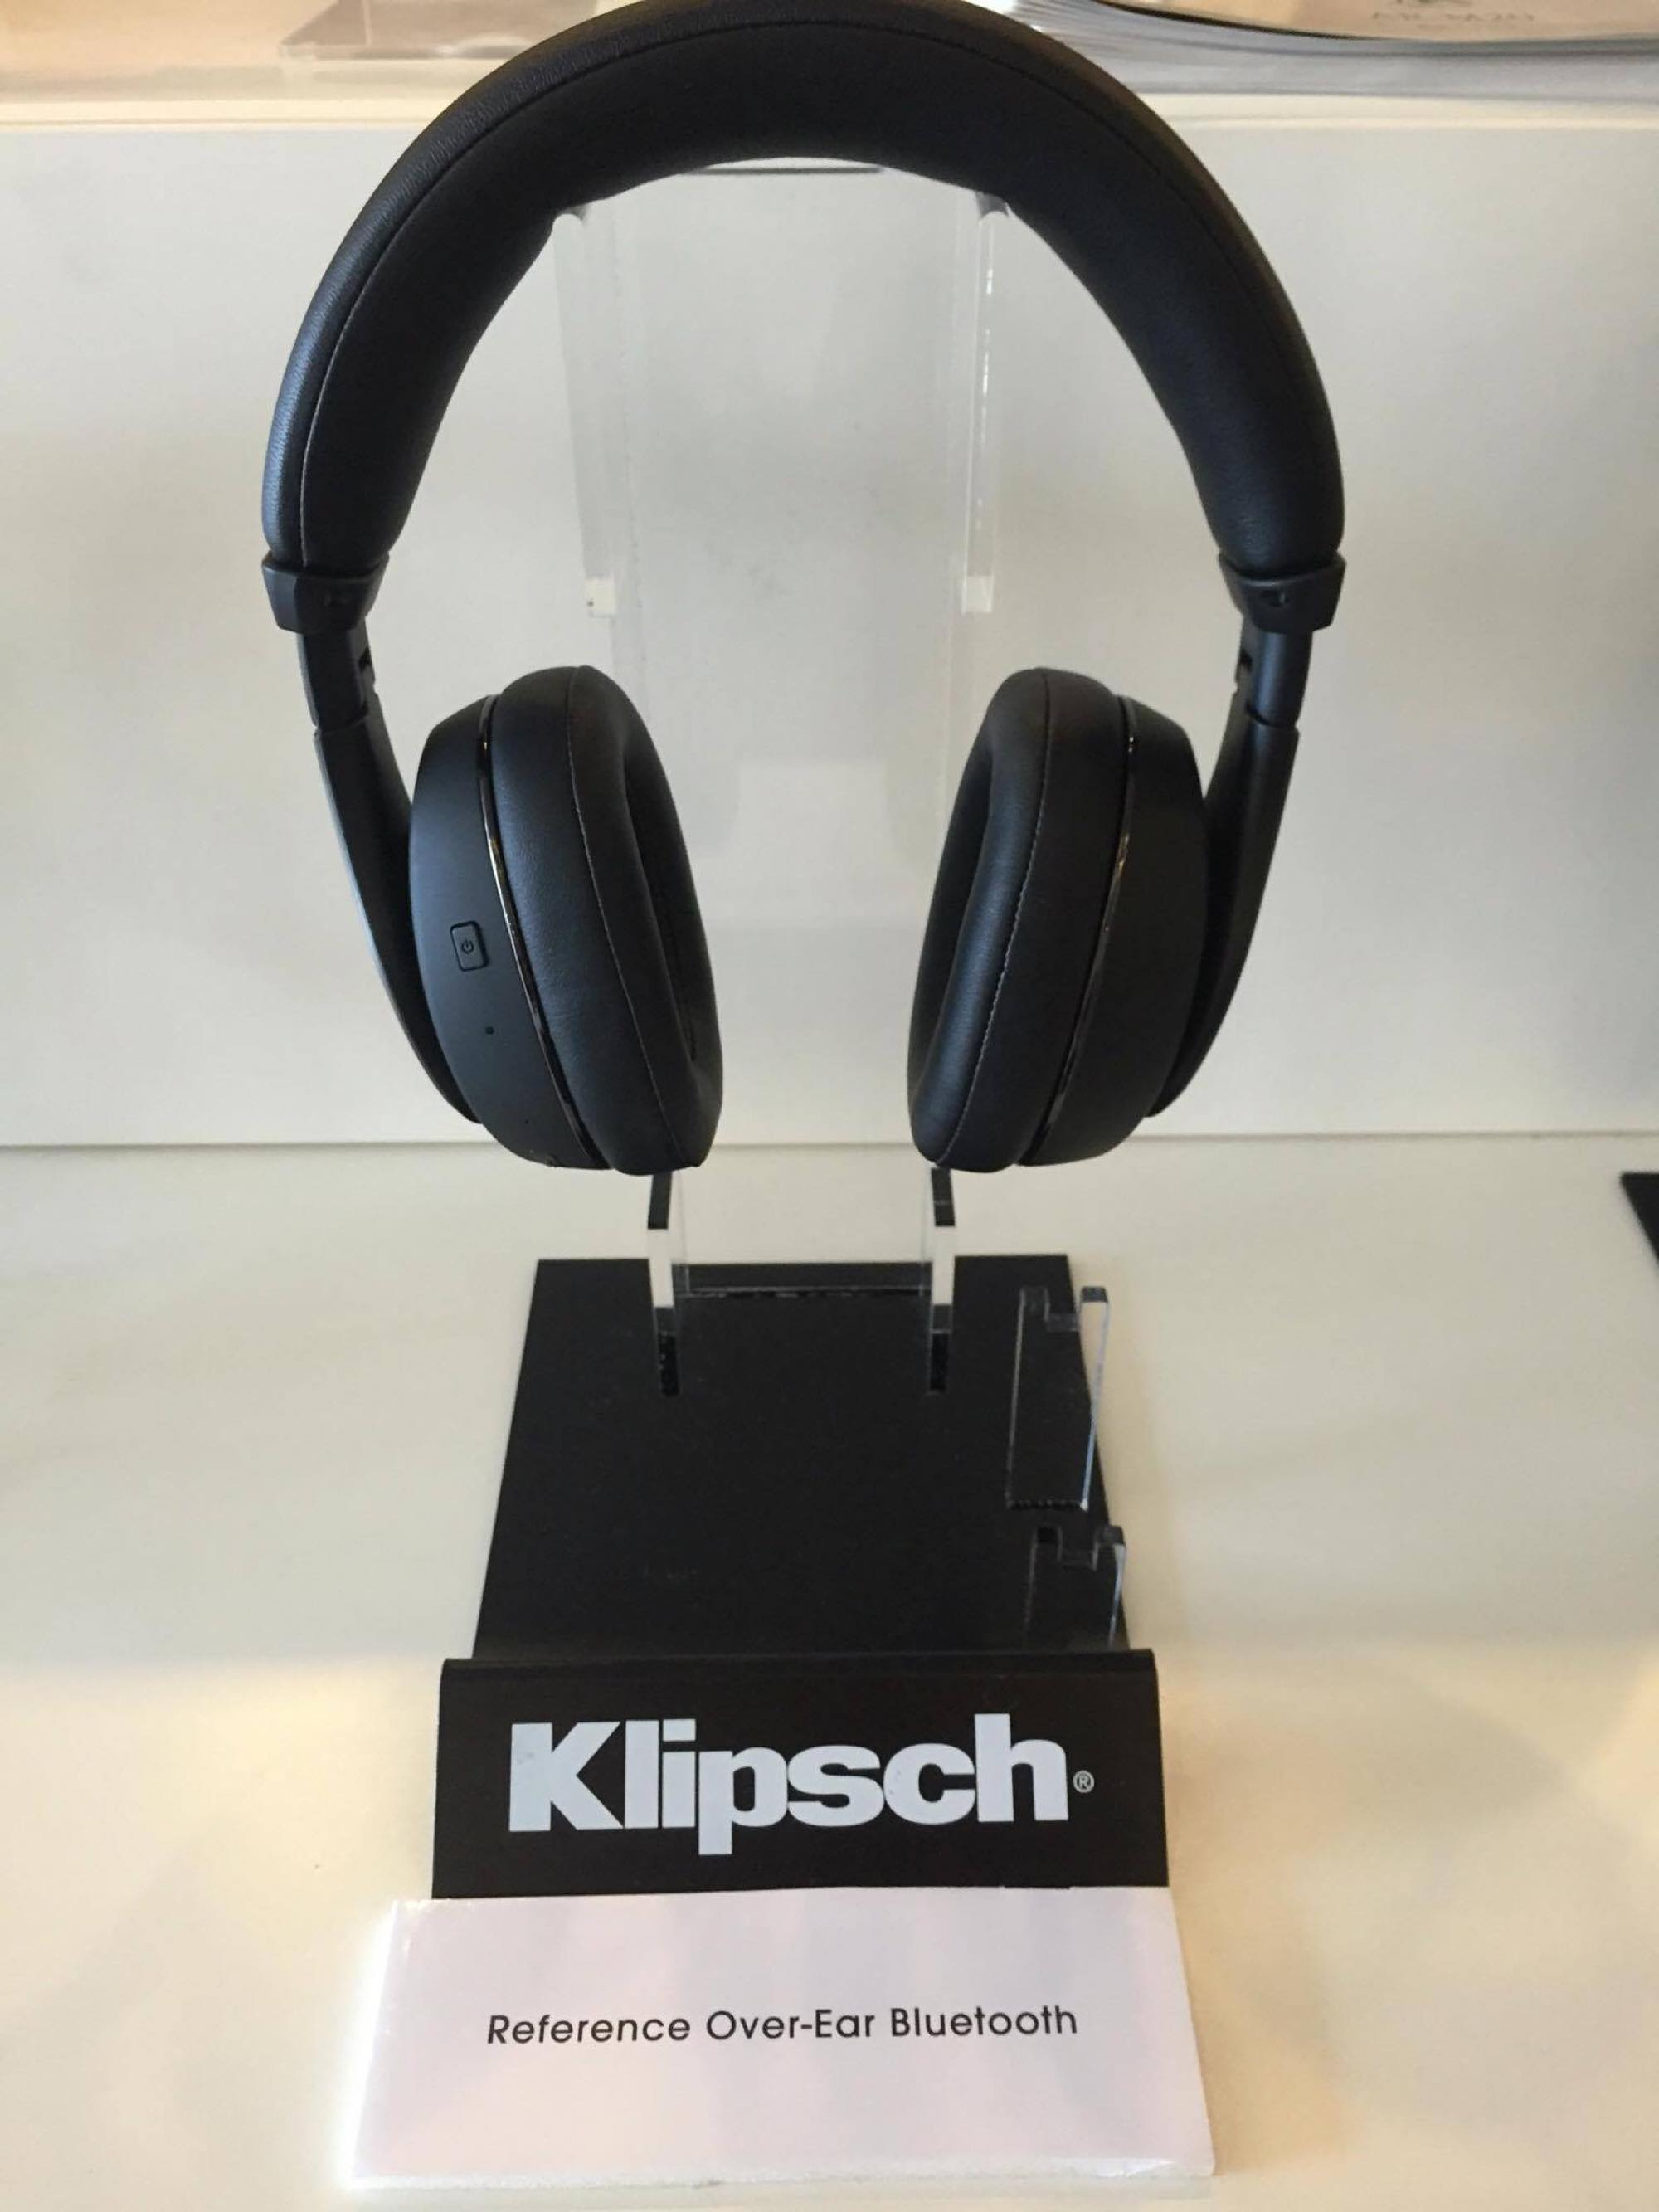 klipsch-headphone5